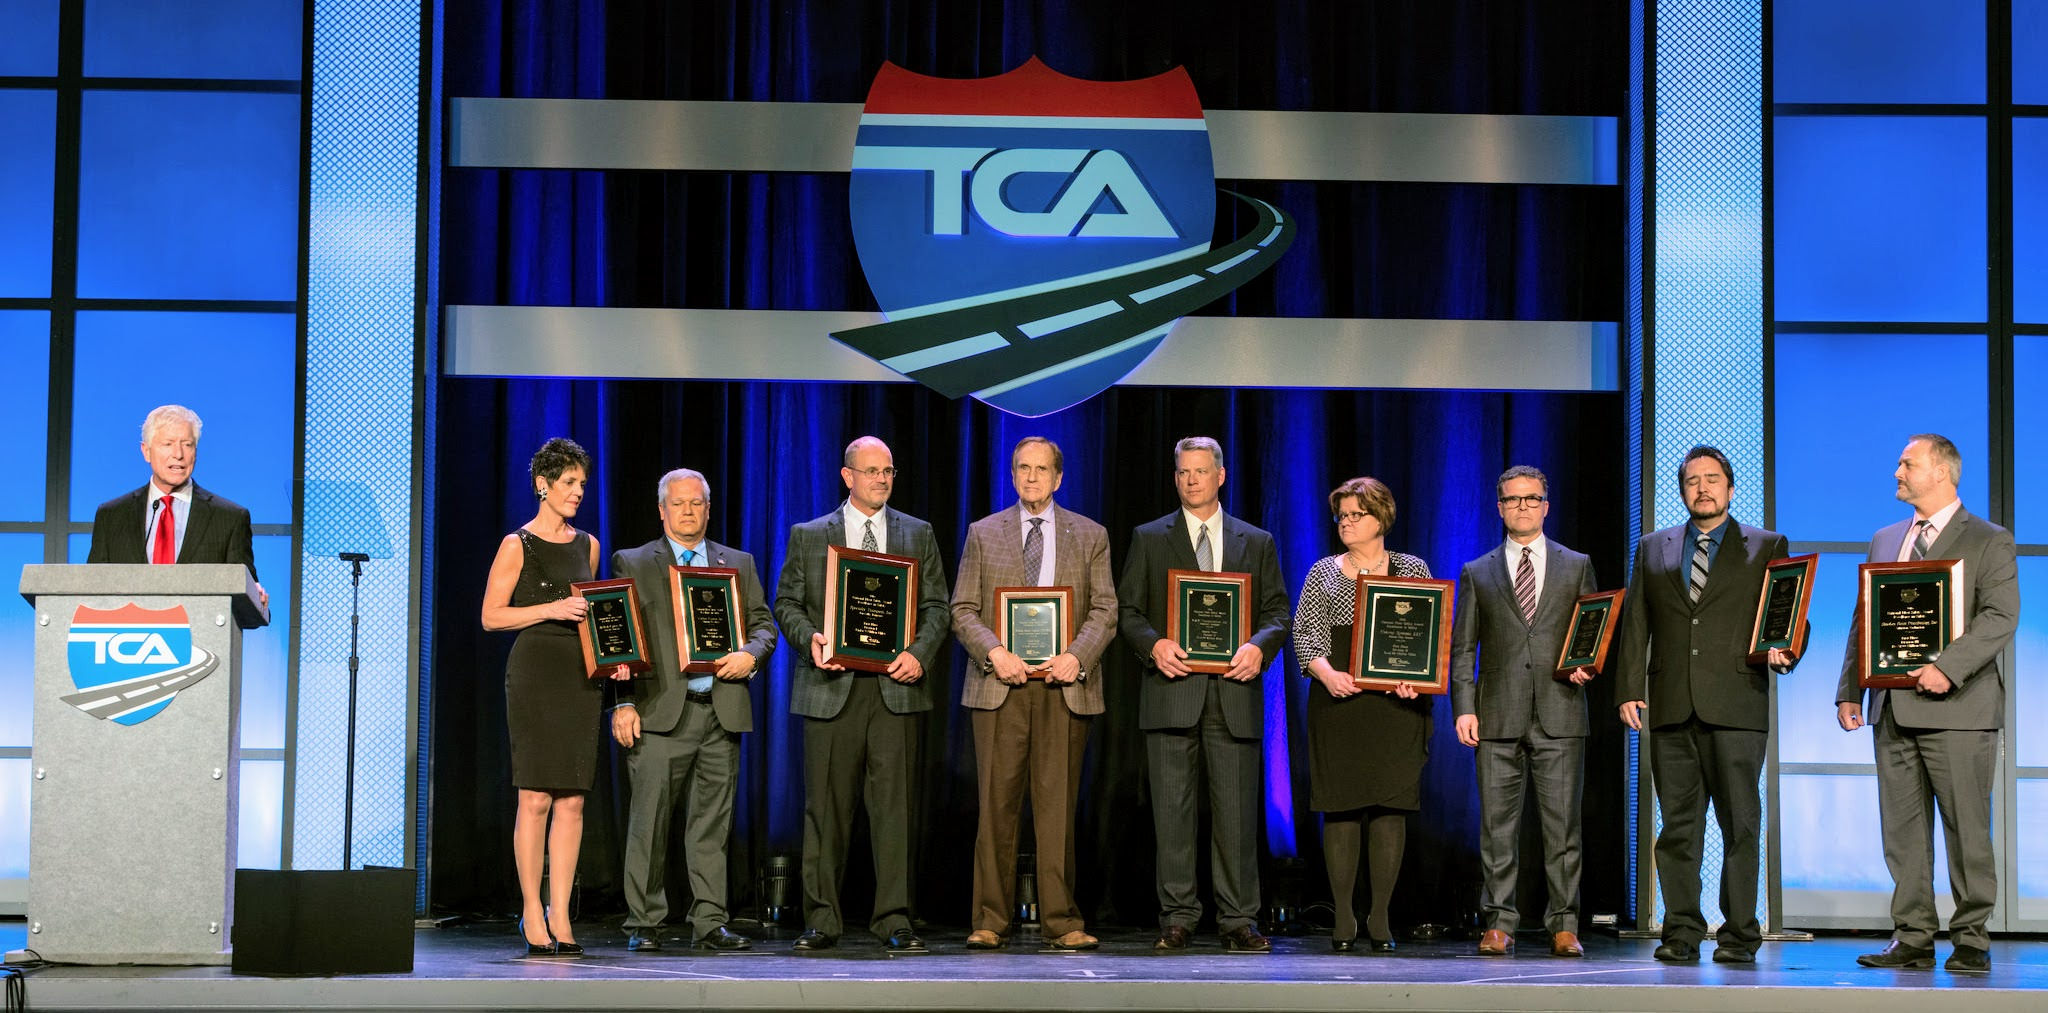 Patrick Kuehl, executive vice president of Great West Casualty Company (at podium), acknowledges several fleets honored with top safety awards for their outstanding safety records in 2016 at the Truckload Carriers Association's Annual Convention in Nashville, Tennessee.